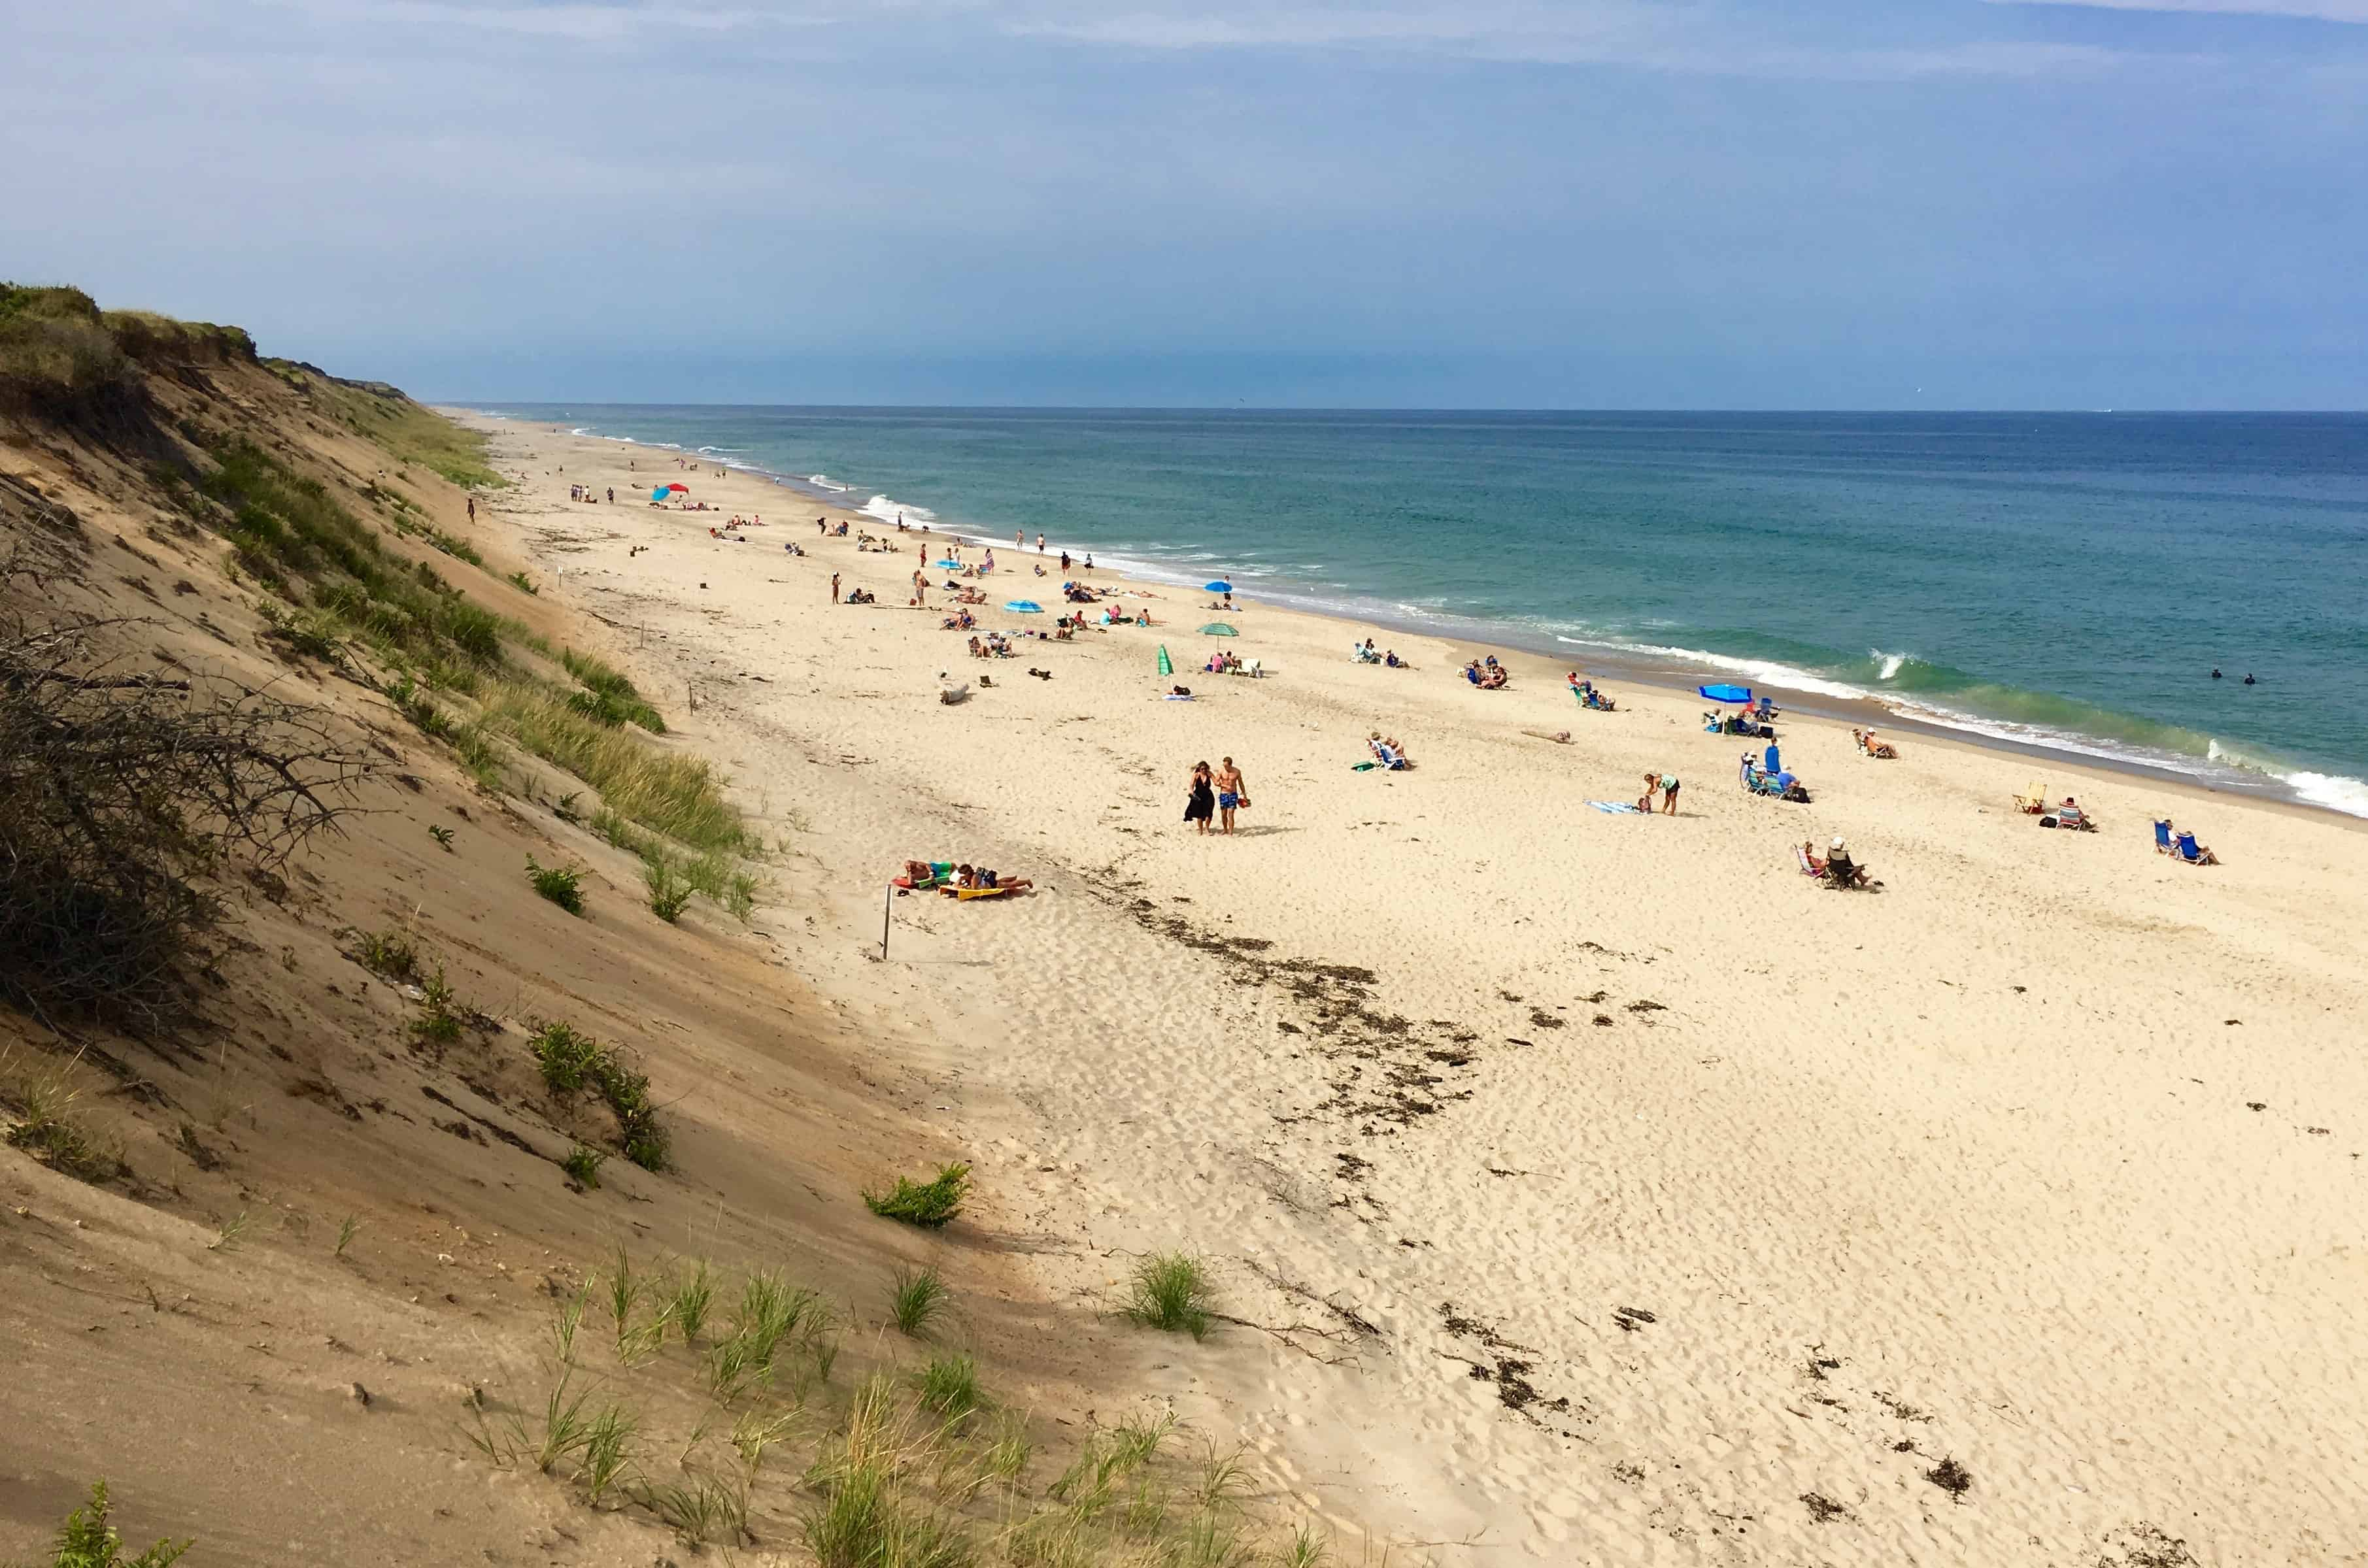 Where Is The Best Place To Stay On Cape Cod?